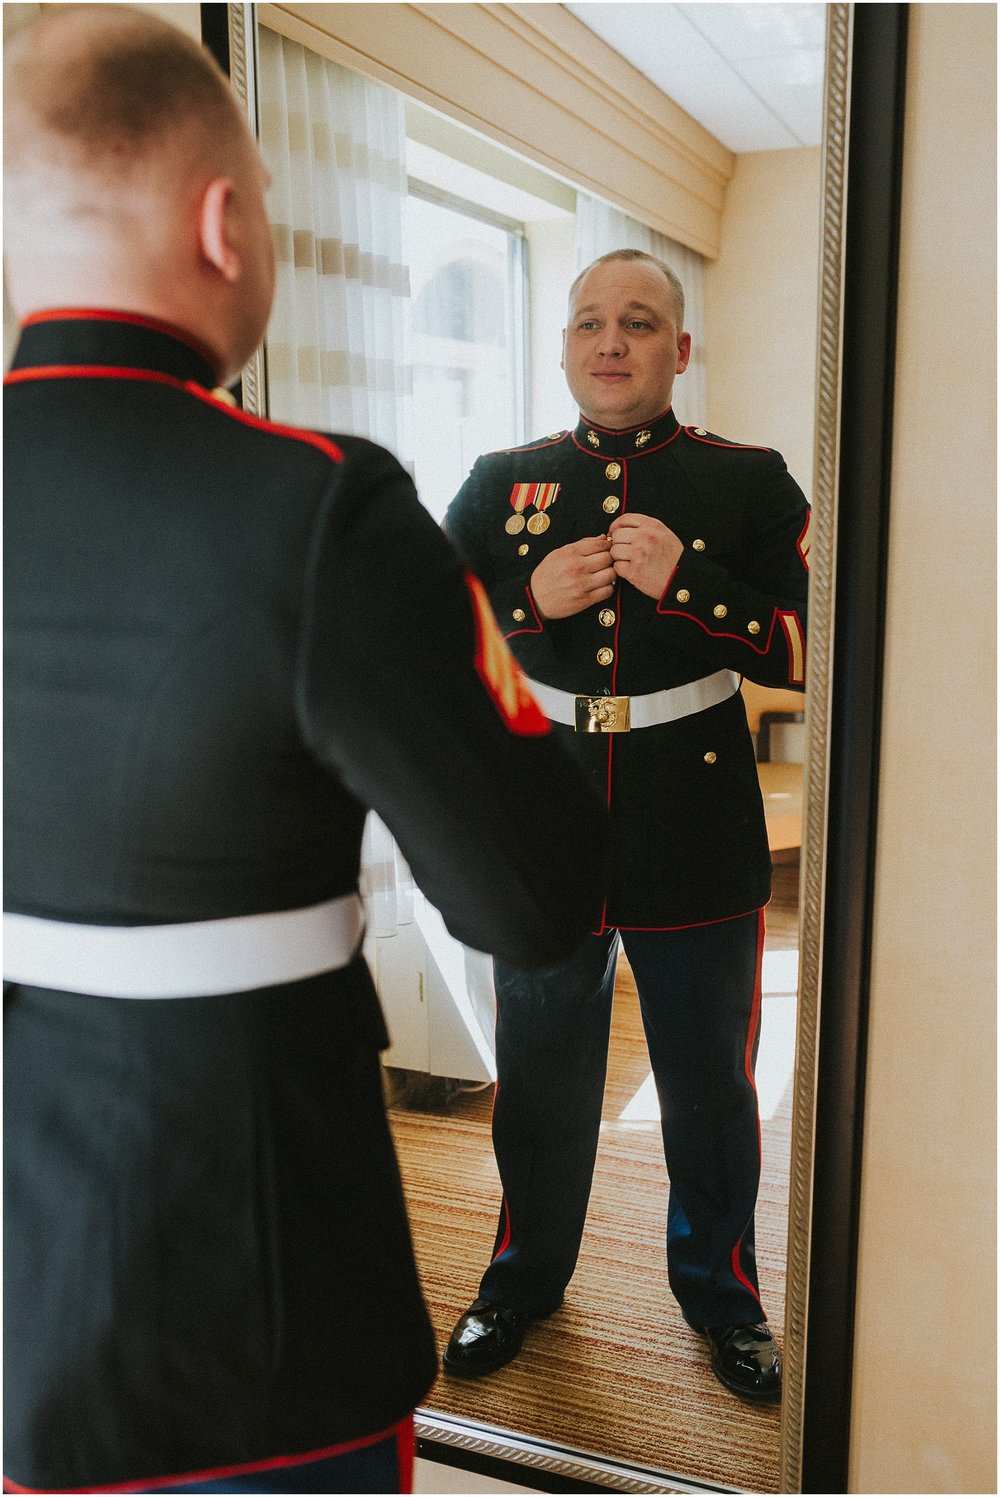 Marine Corp Groom in his dress blues getting ready for his wedding